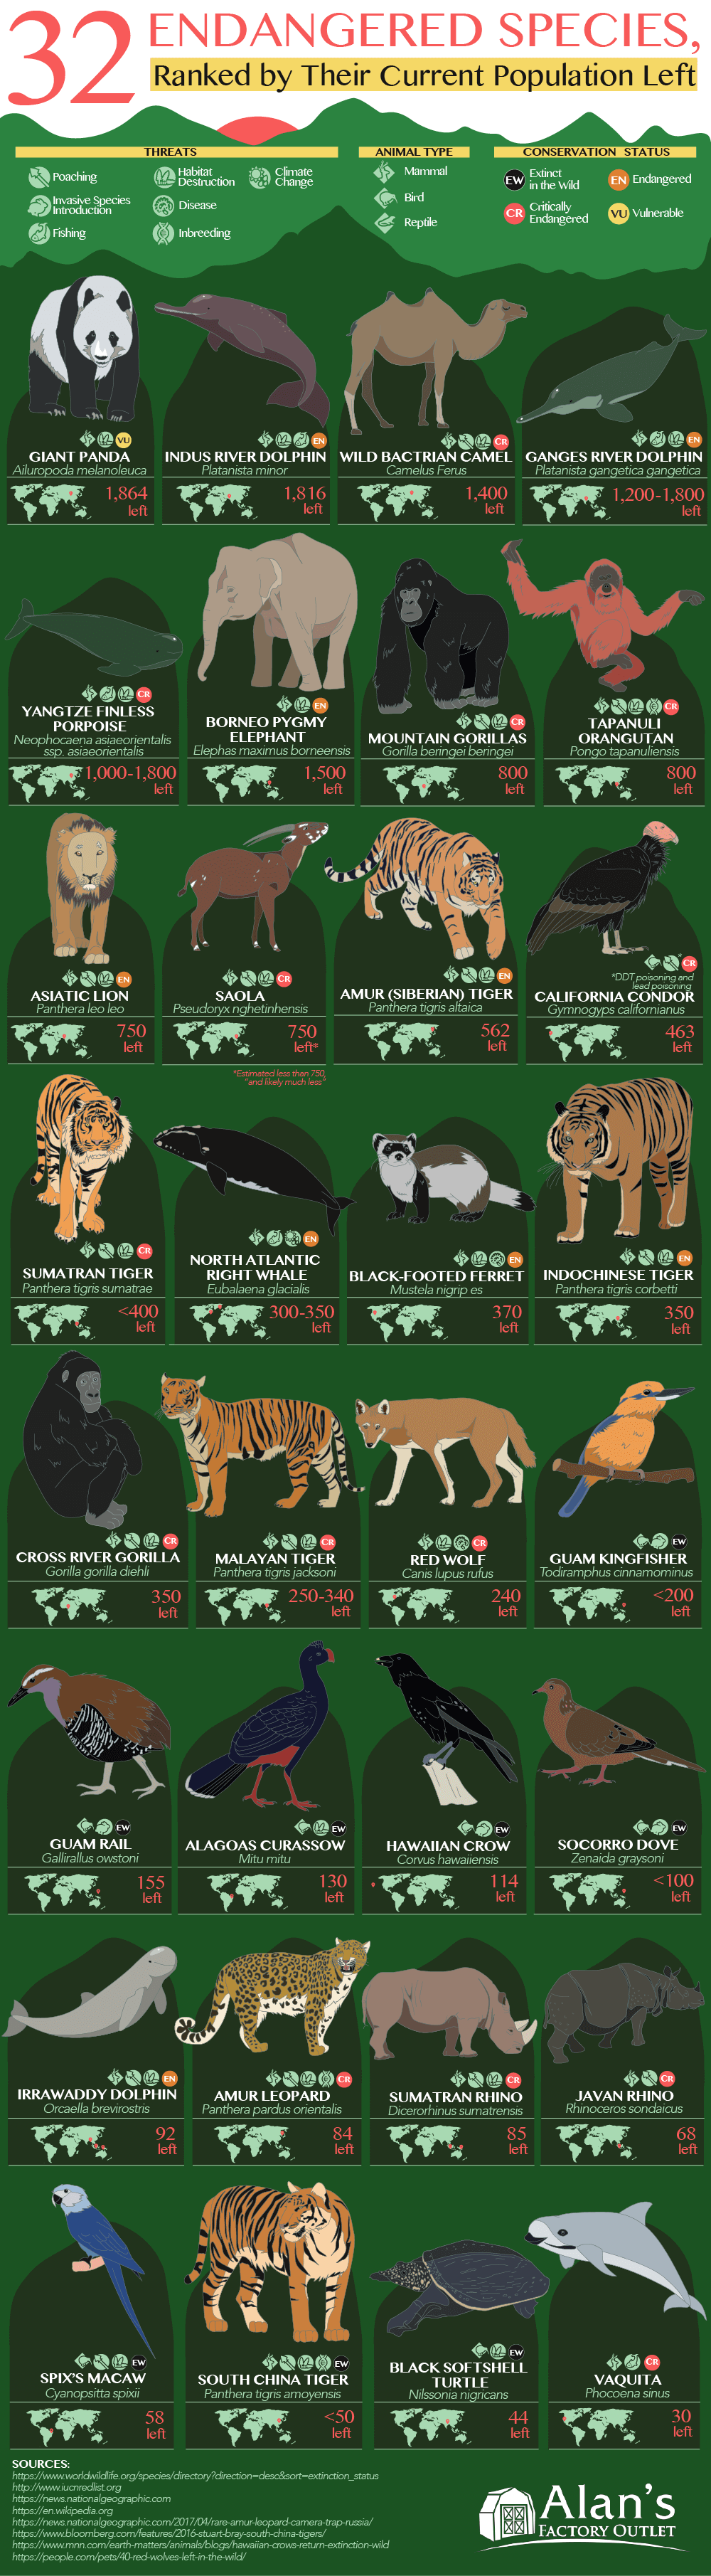 32-endangered-species-ranked-by-populaton-left-4